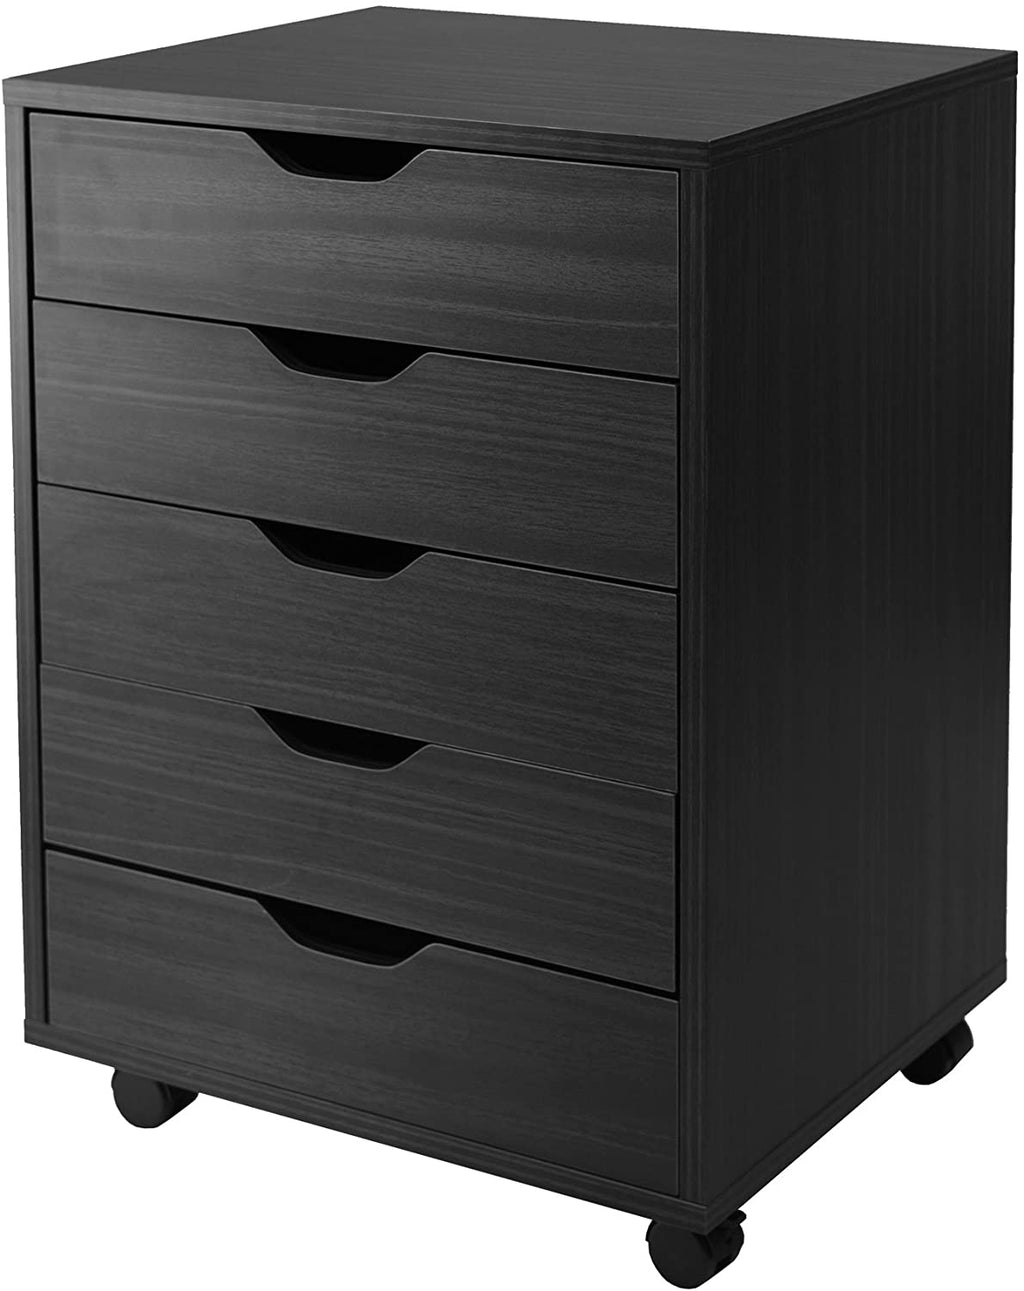 HalifaxCabinet, Black, 5-Drawer - Pot Racks Plus